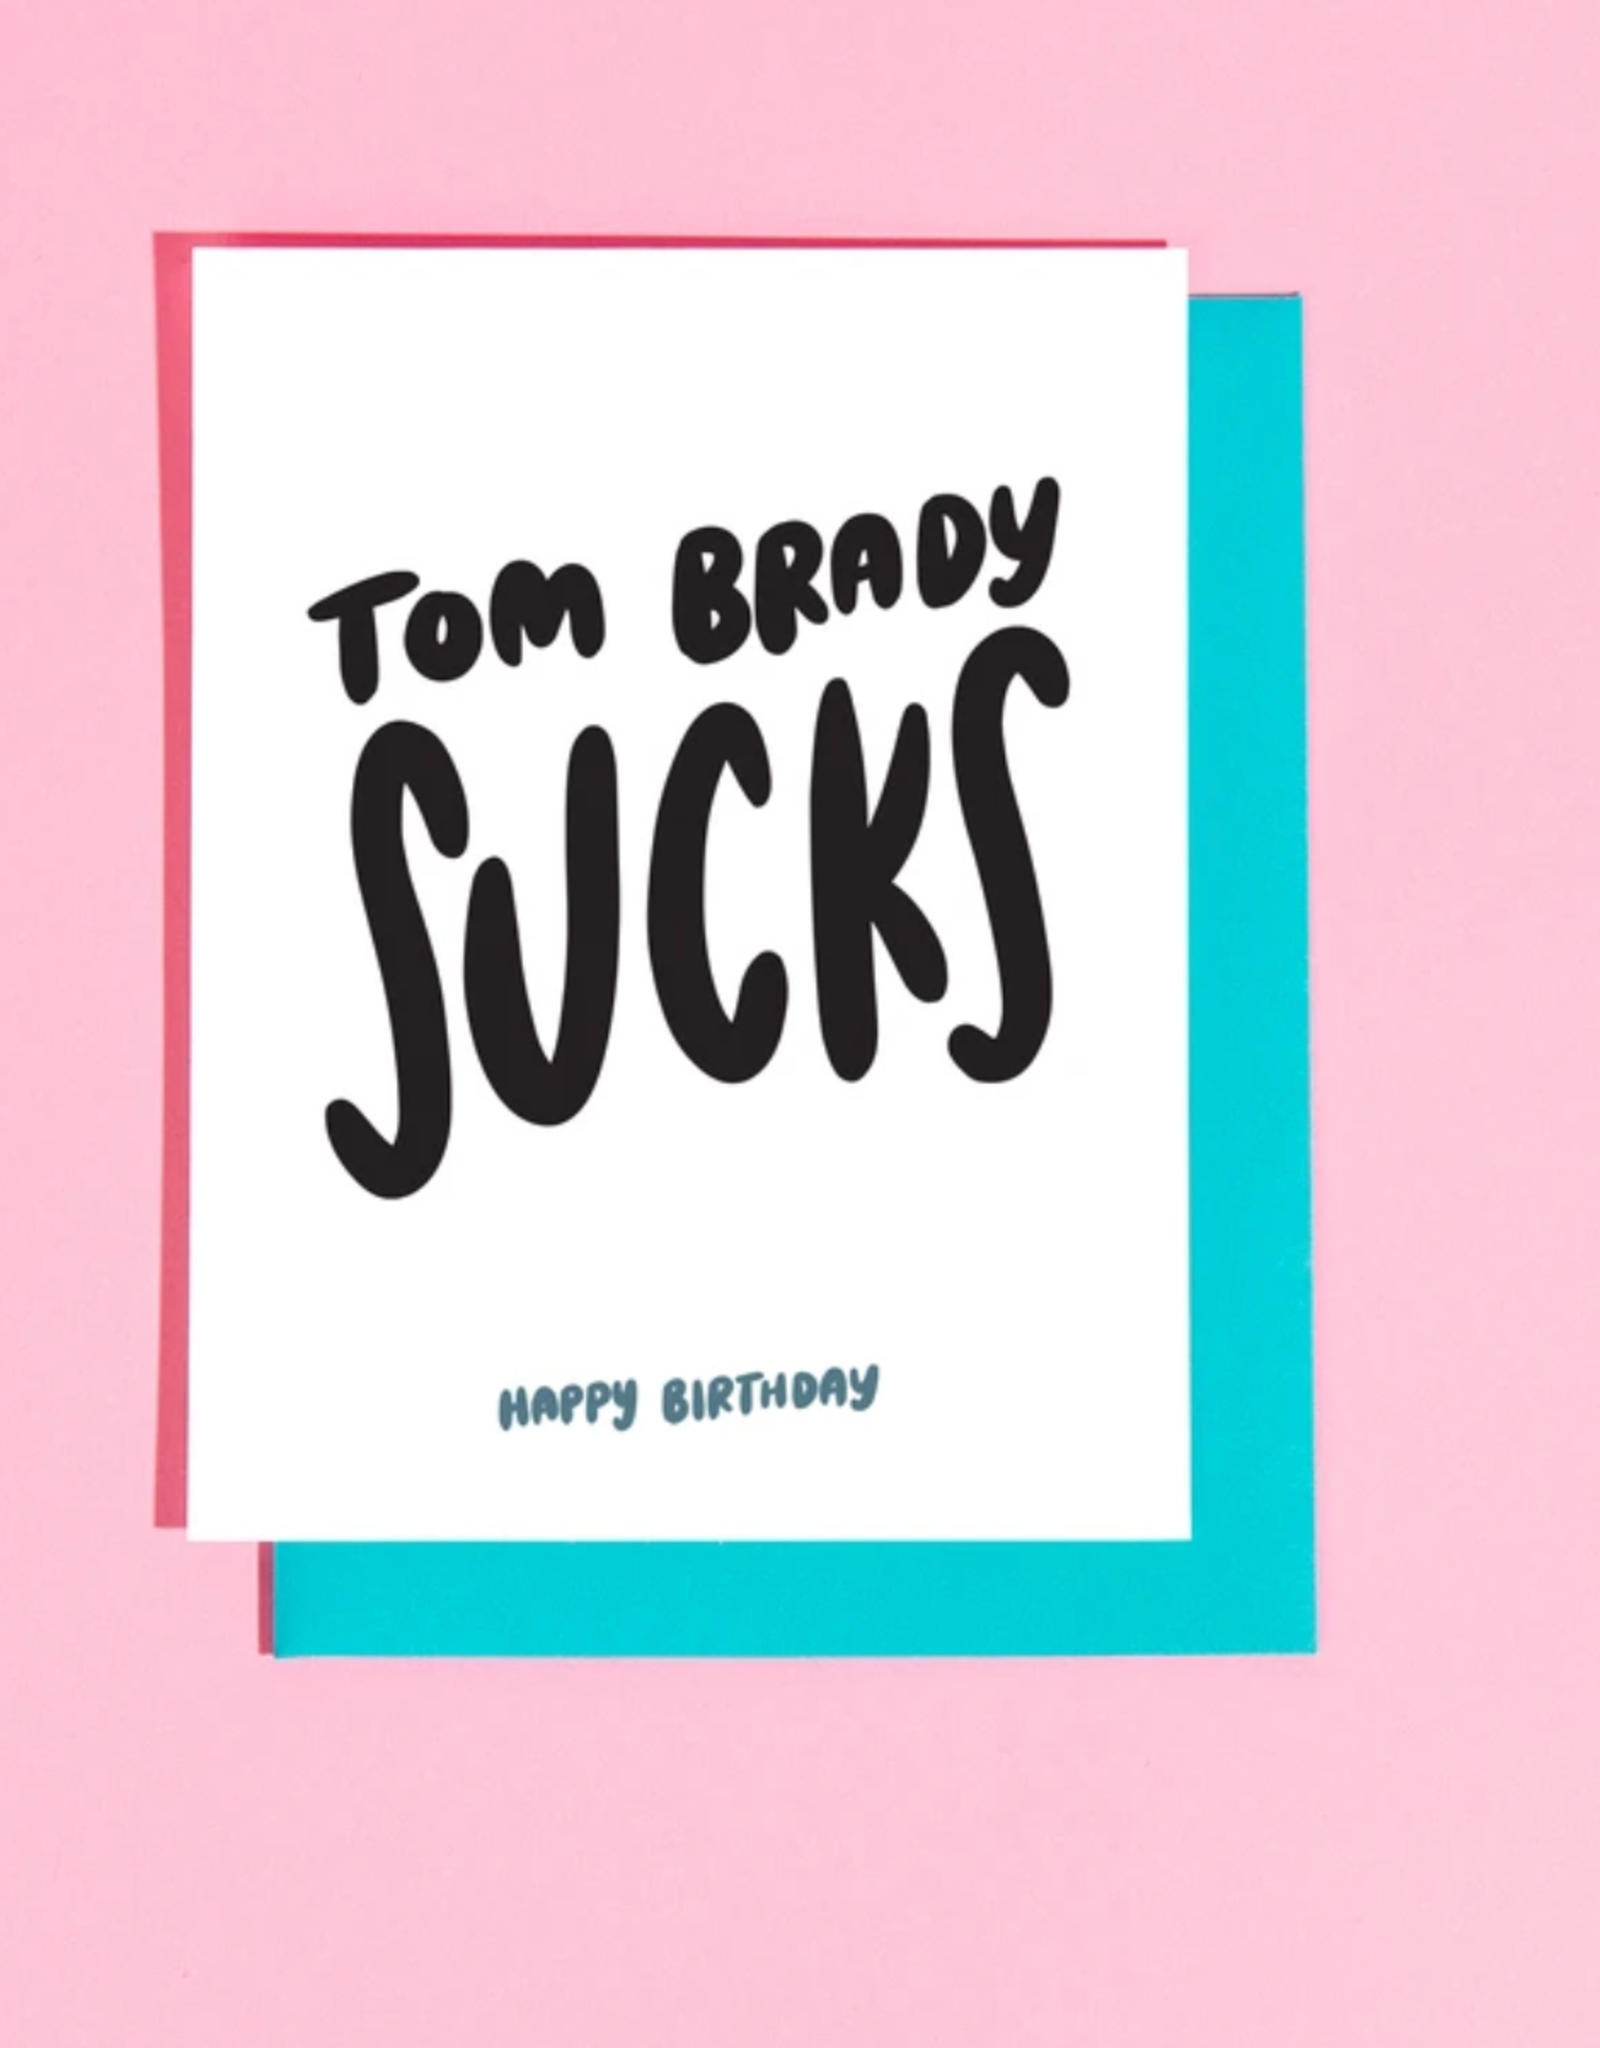 Card - Birthday: Tom Brady Sucks